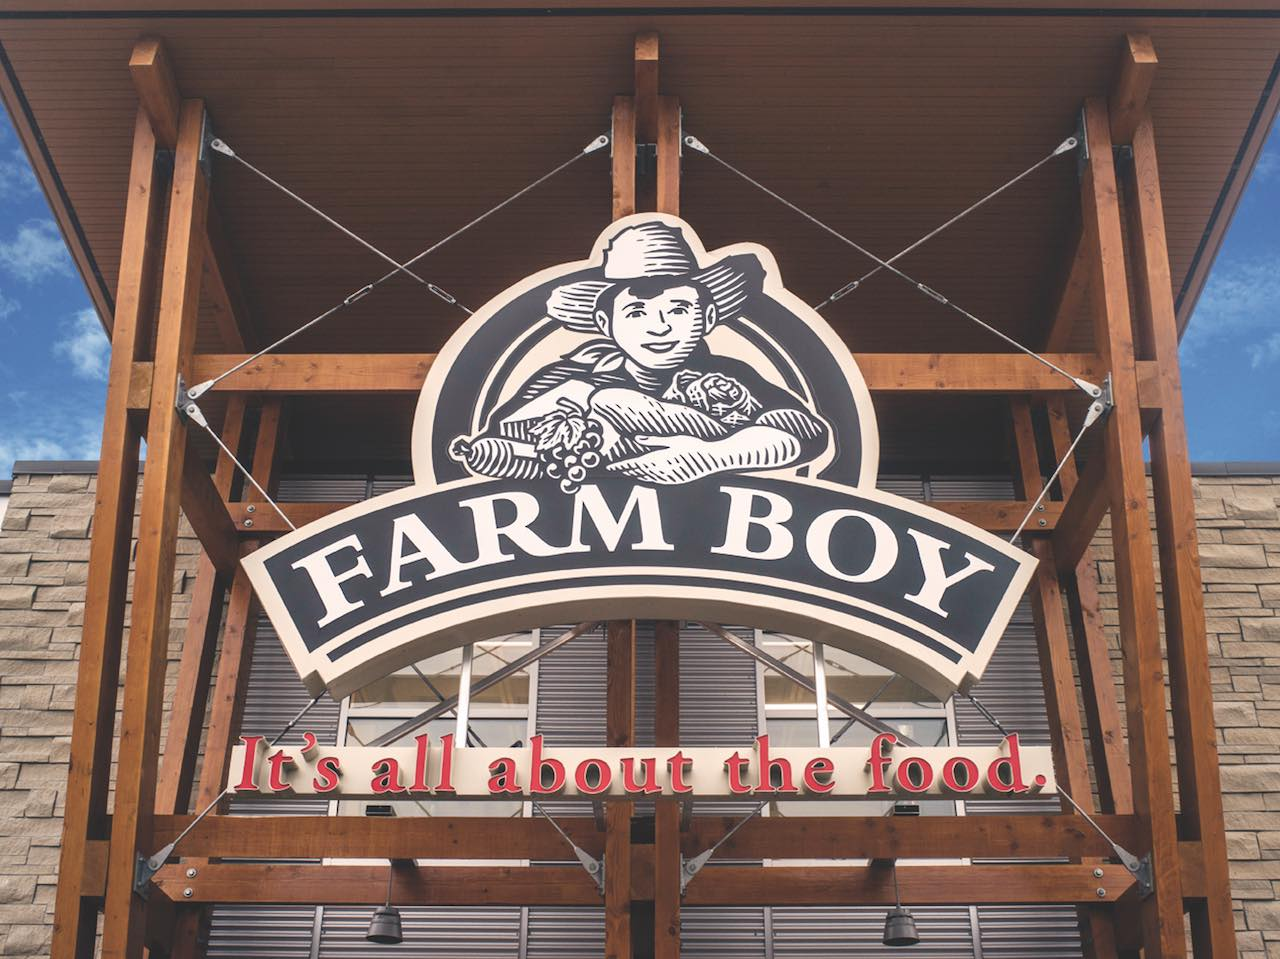 Farm Boy store entrance.